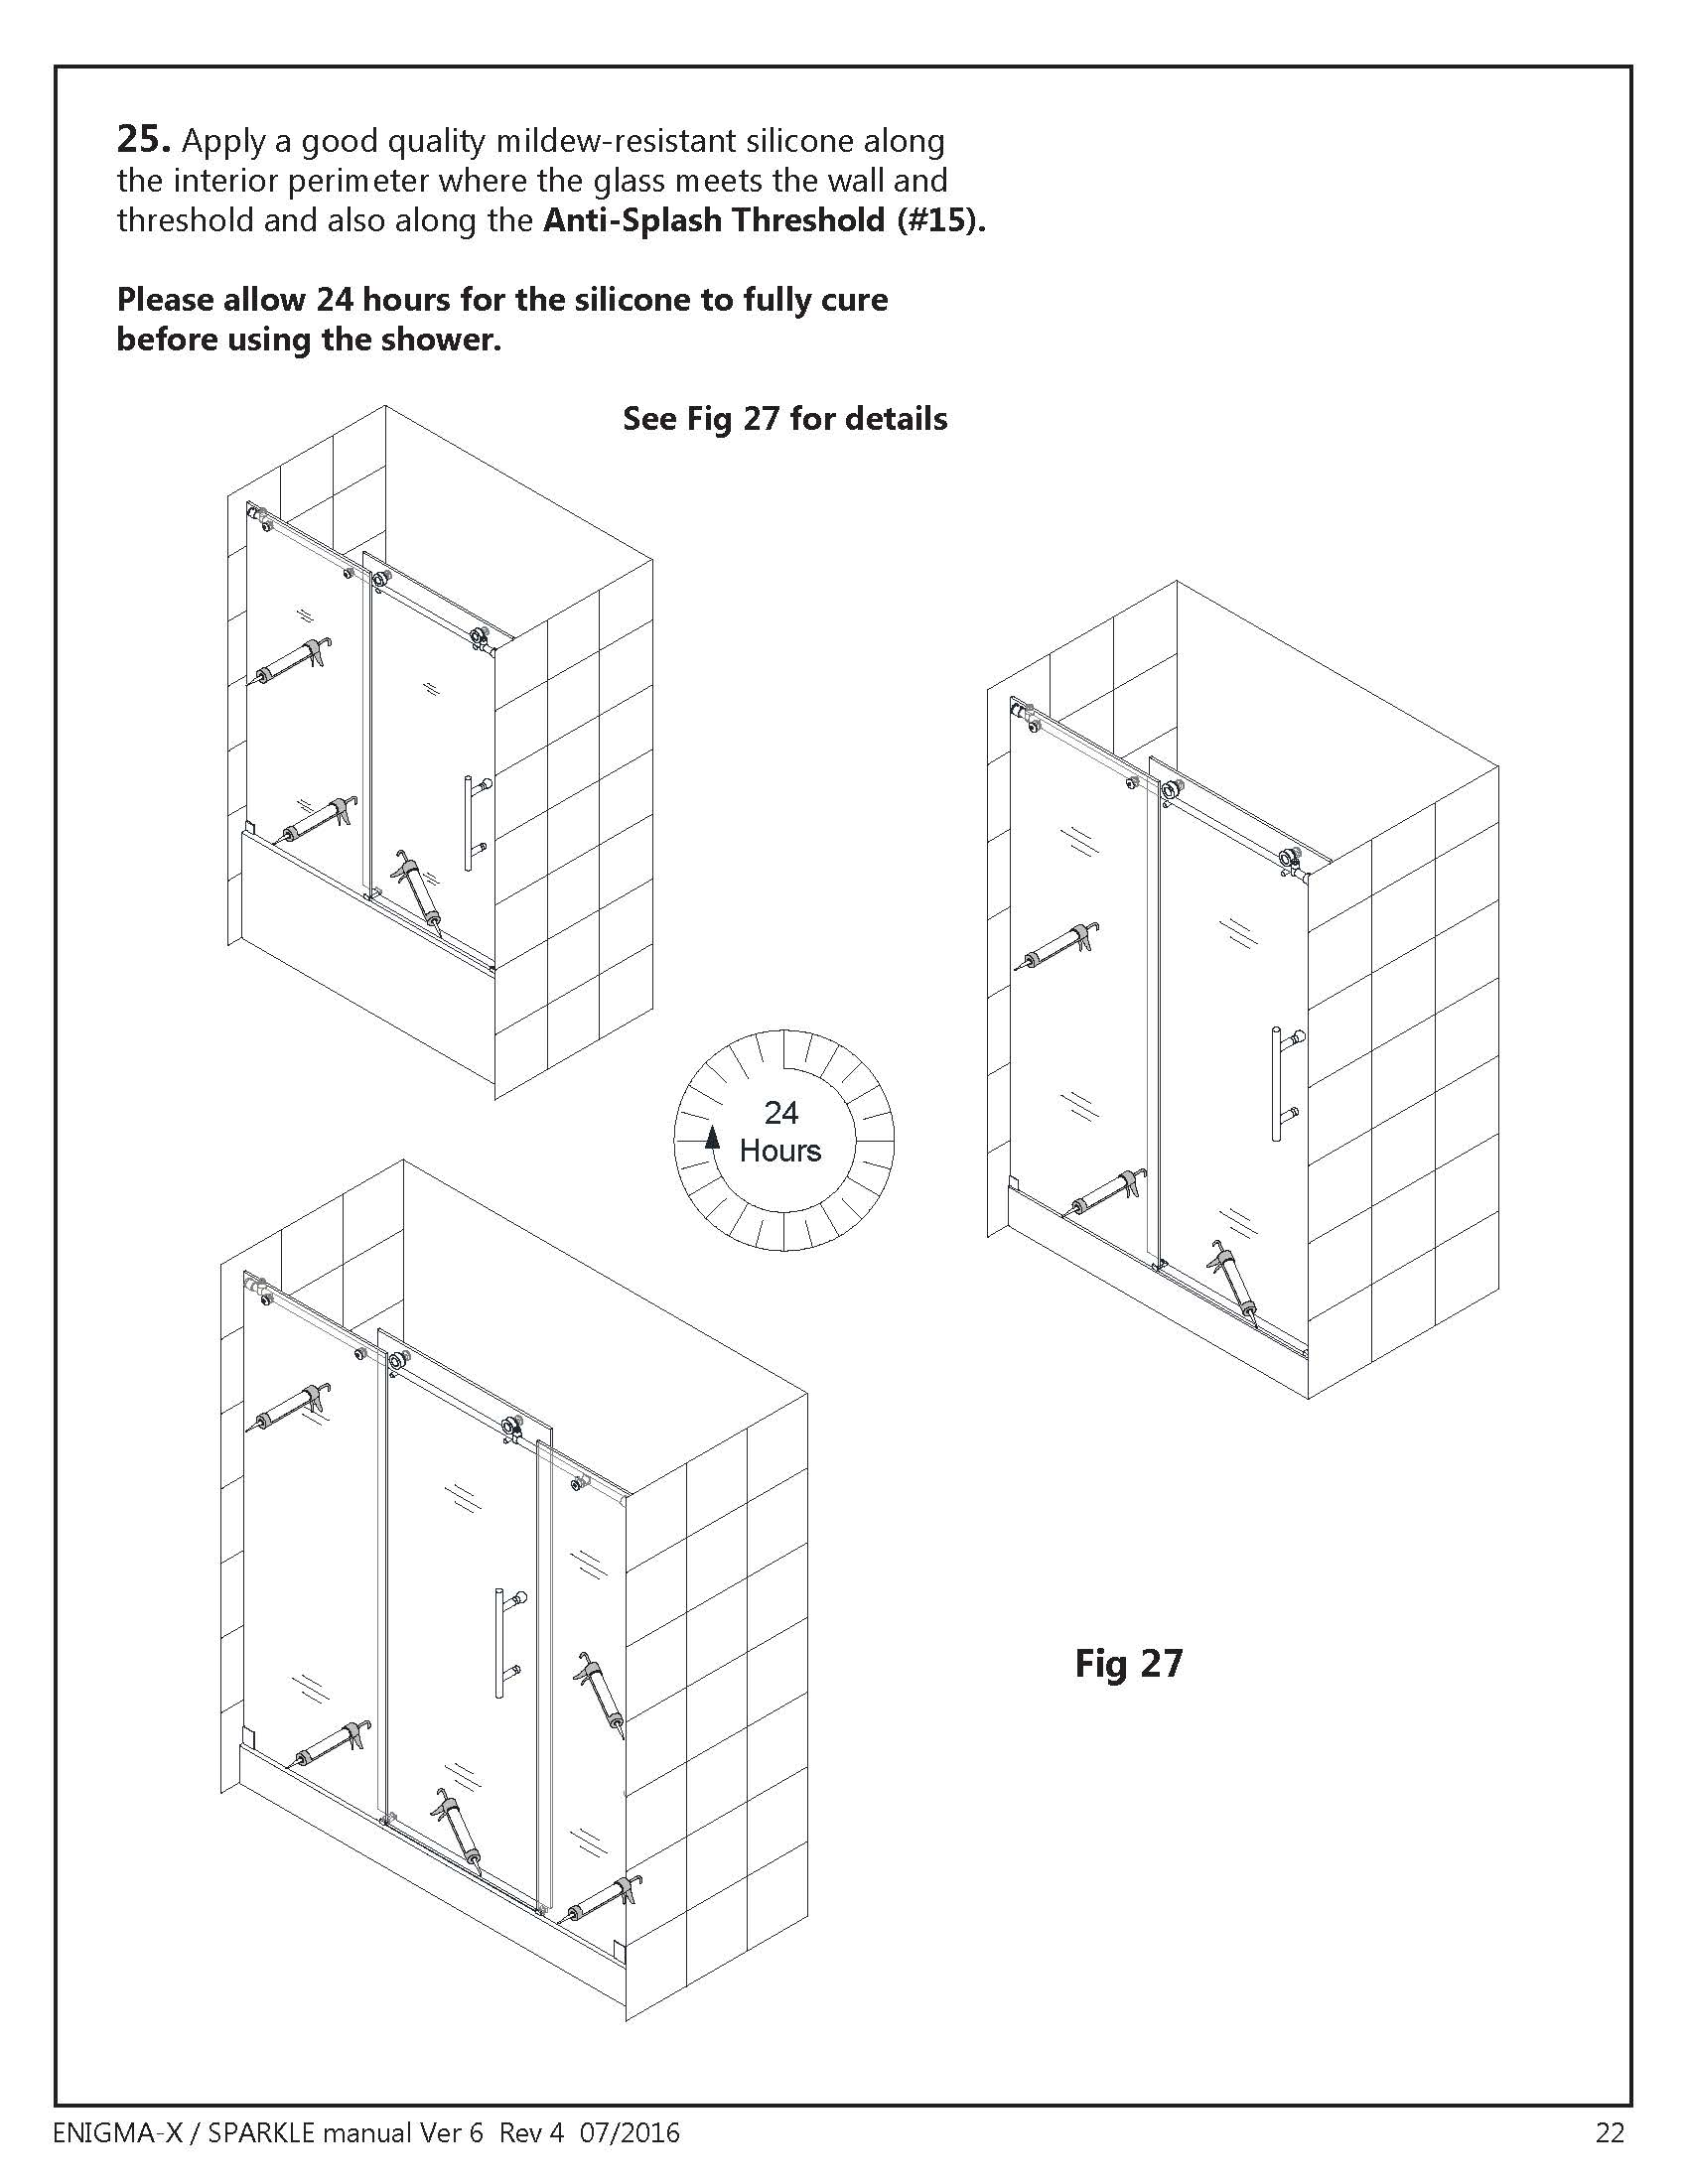 DreamLine Enigma Glass Shower Door Install manual Section - Final Step where and how to apply silicone illustrations